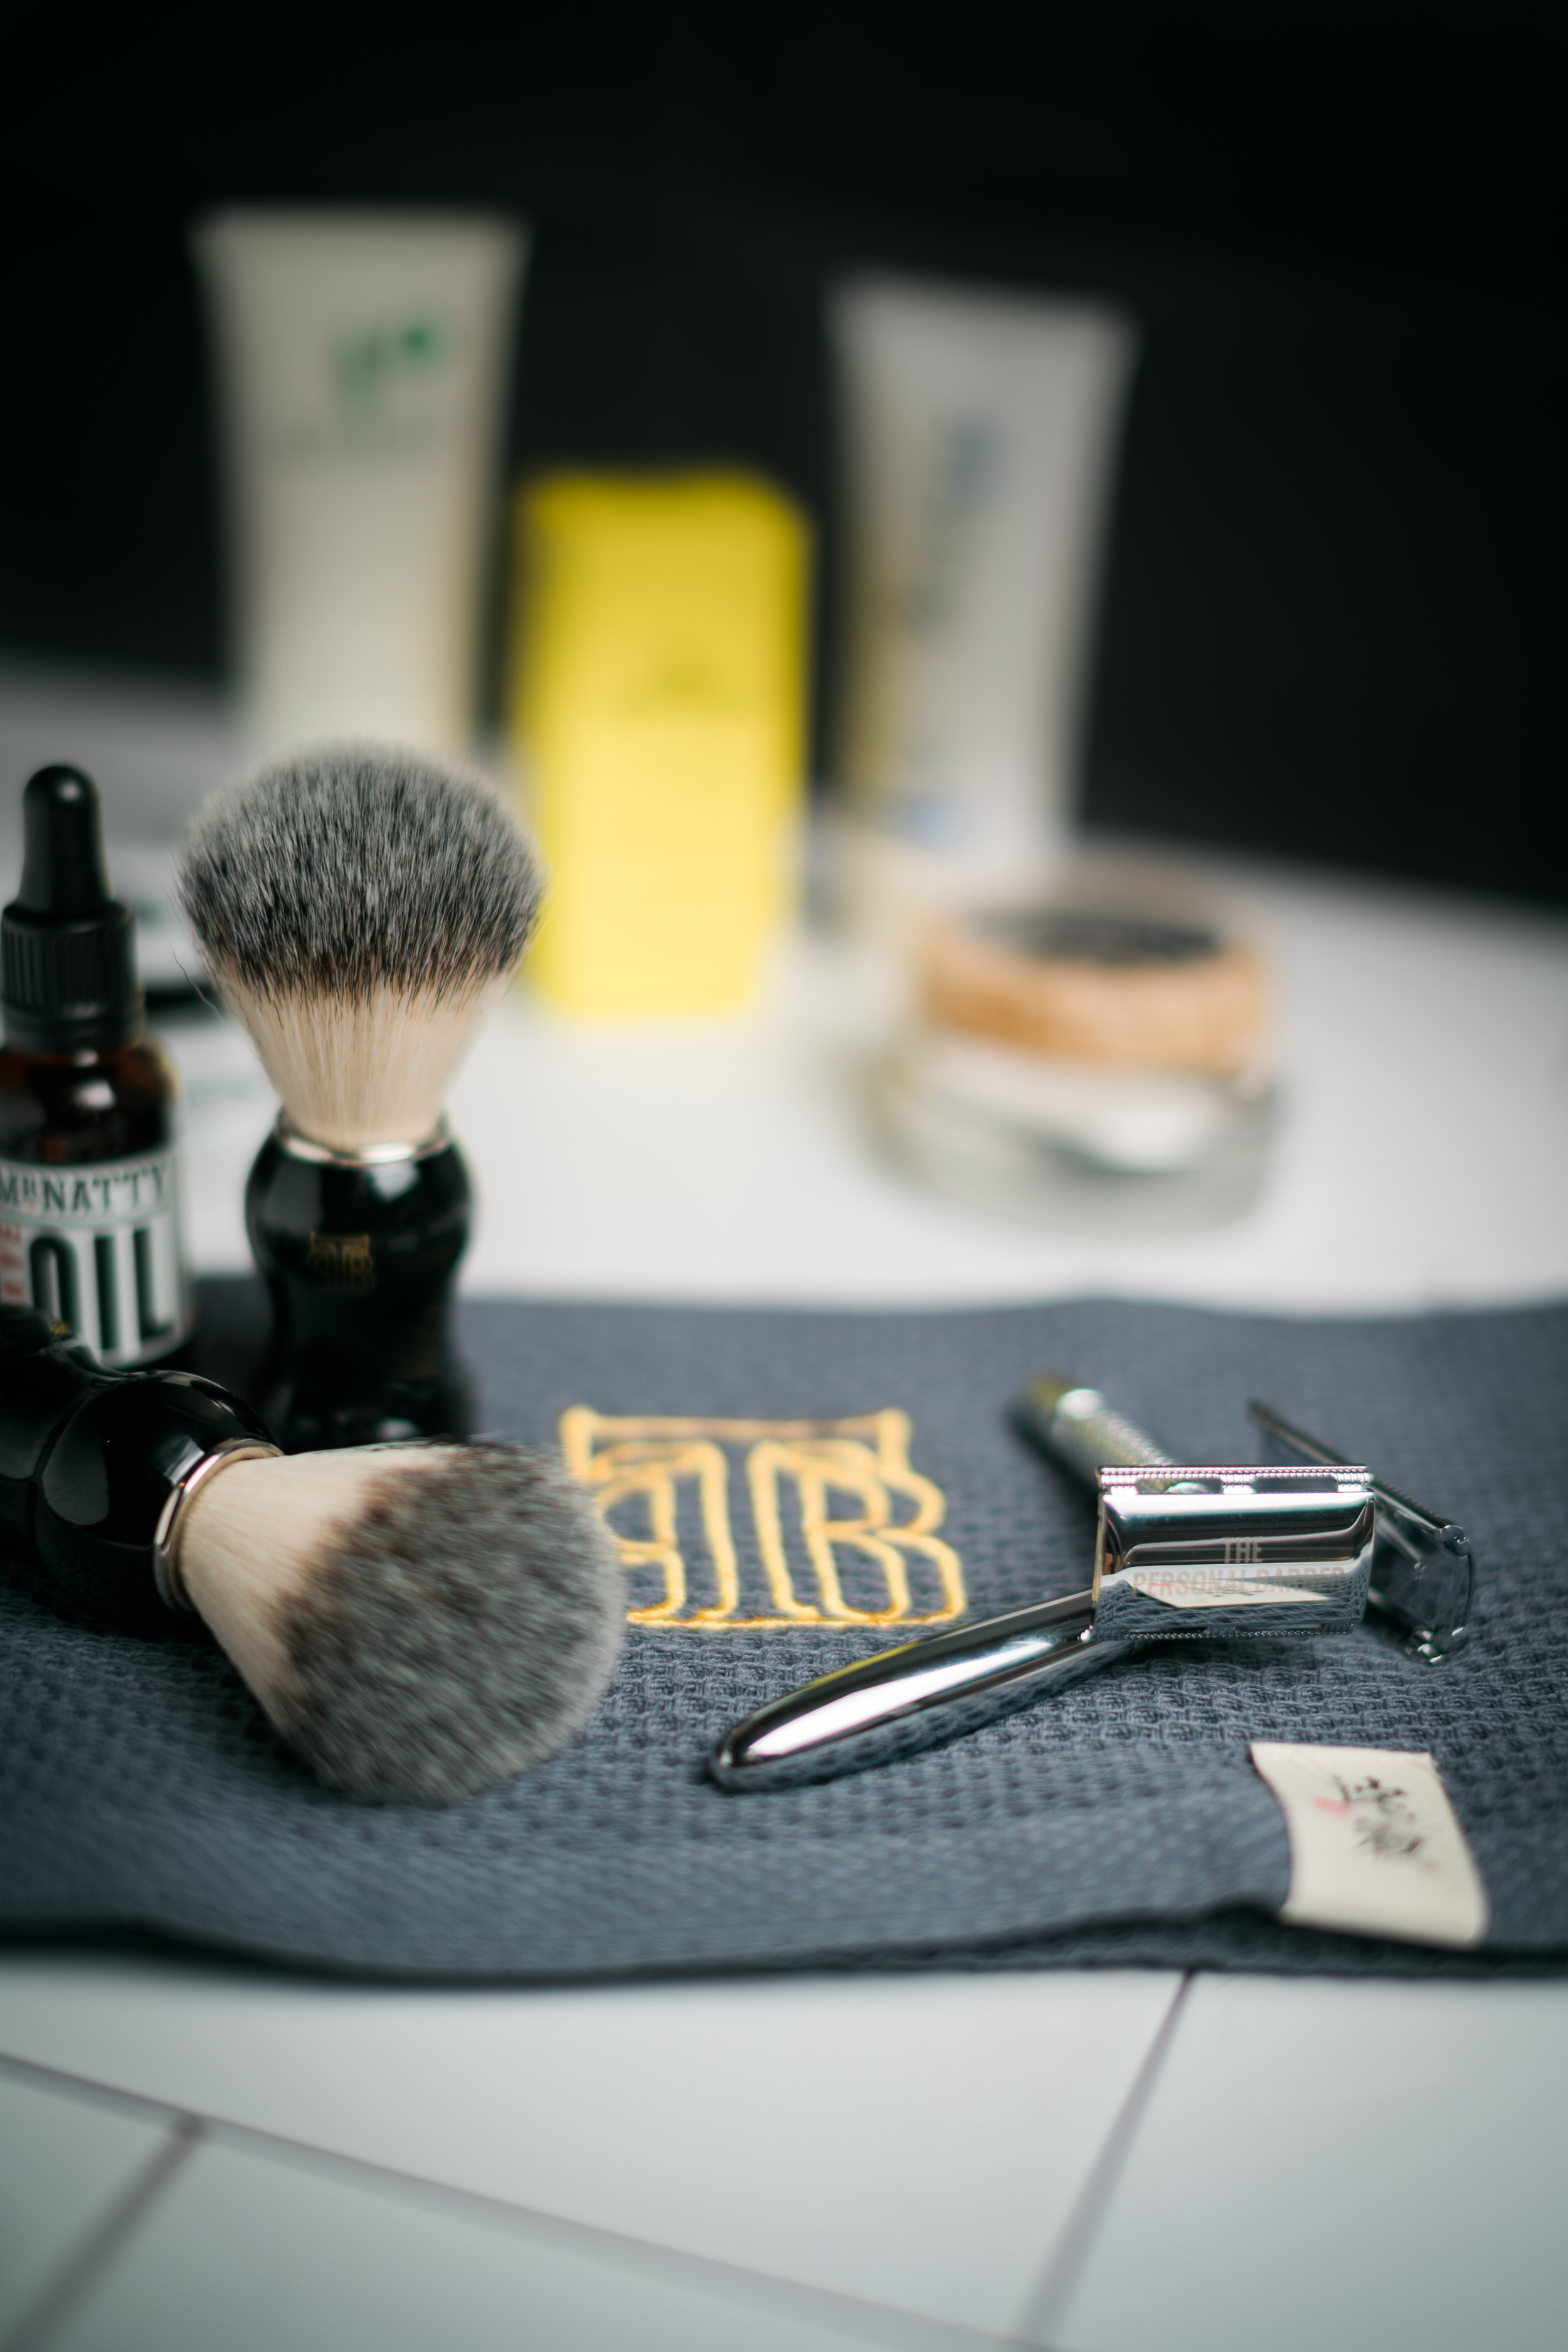 Infertility giveaway freebie the personal barber father's day giveaway